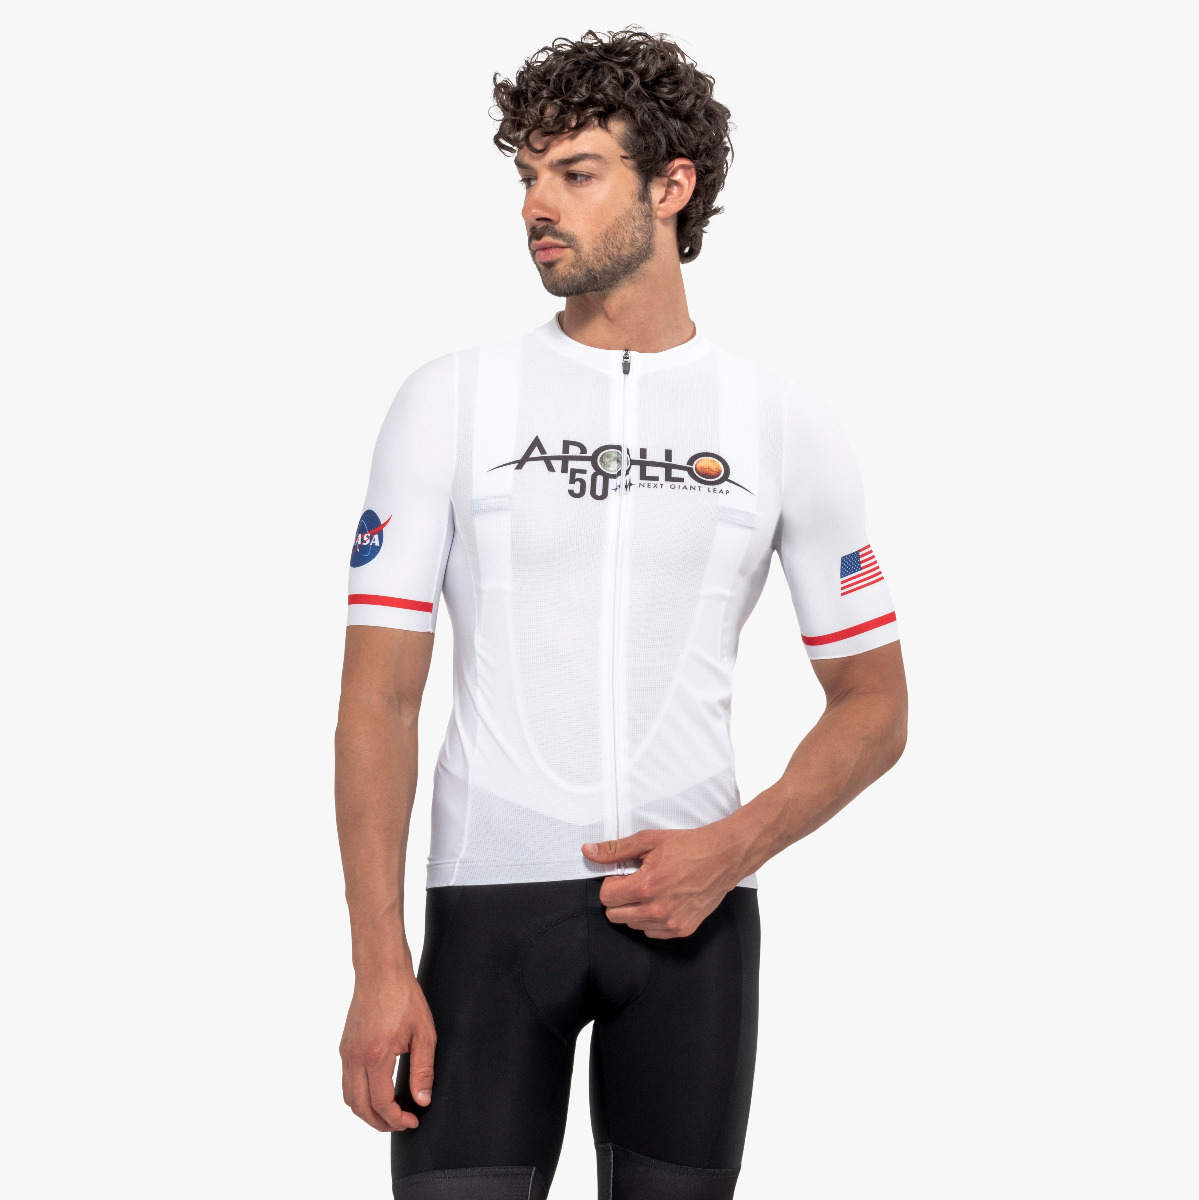 SPACE AGENCY X-OVER CYCLING JERSEY 20